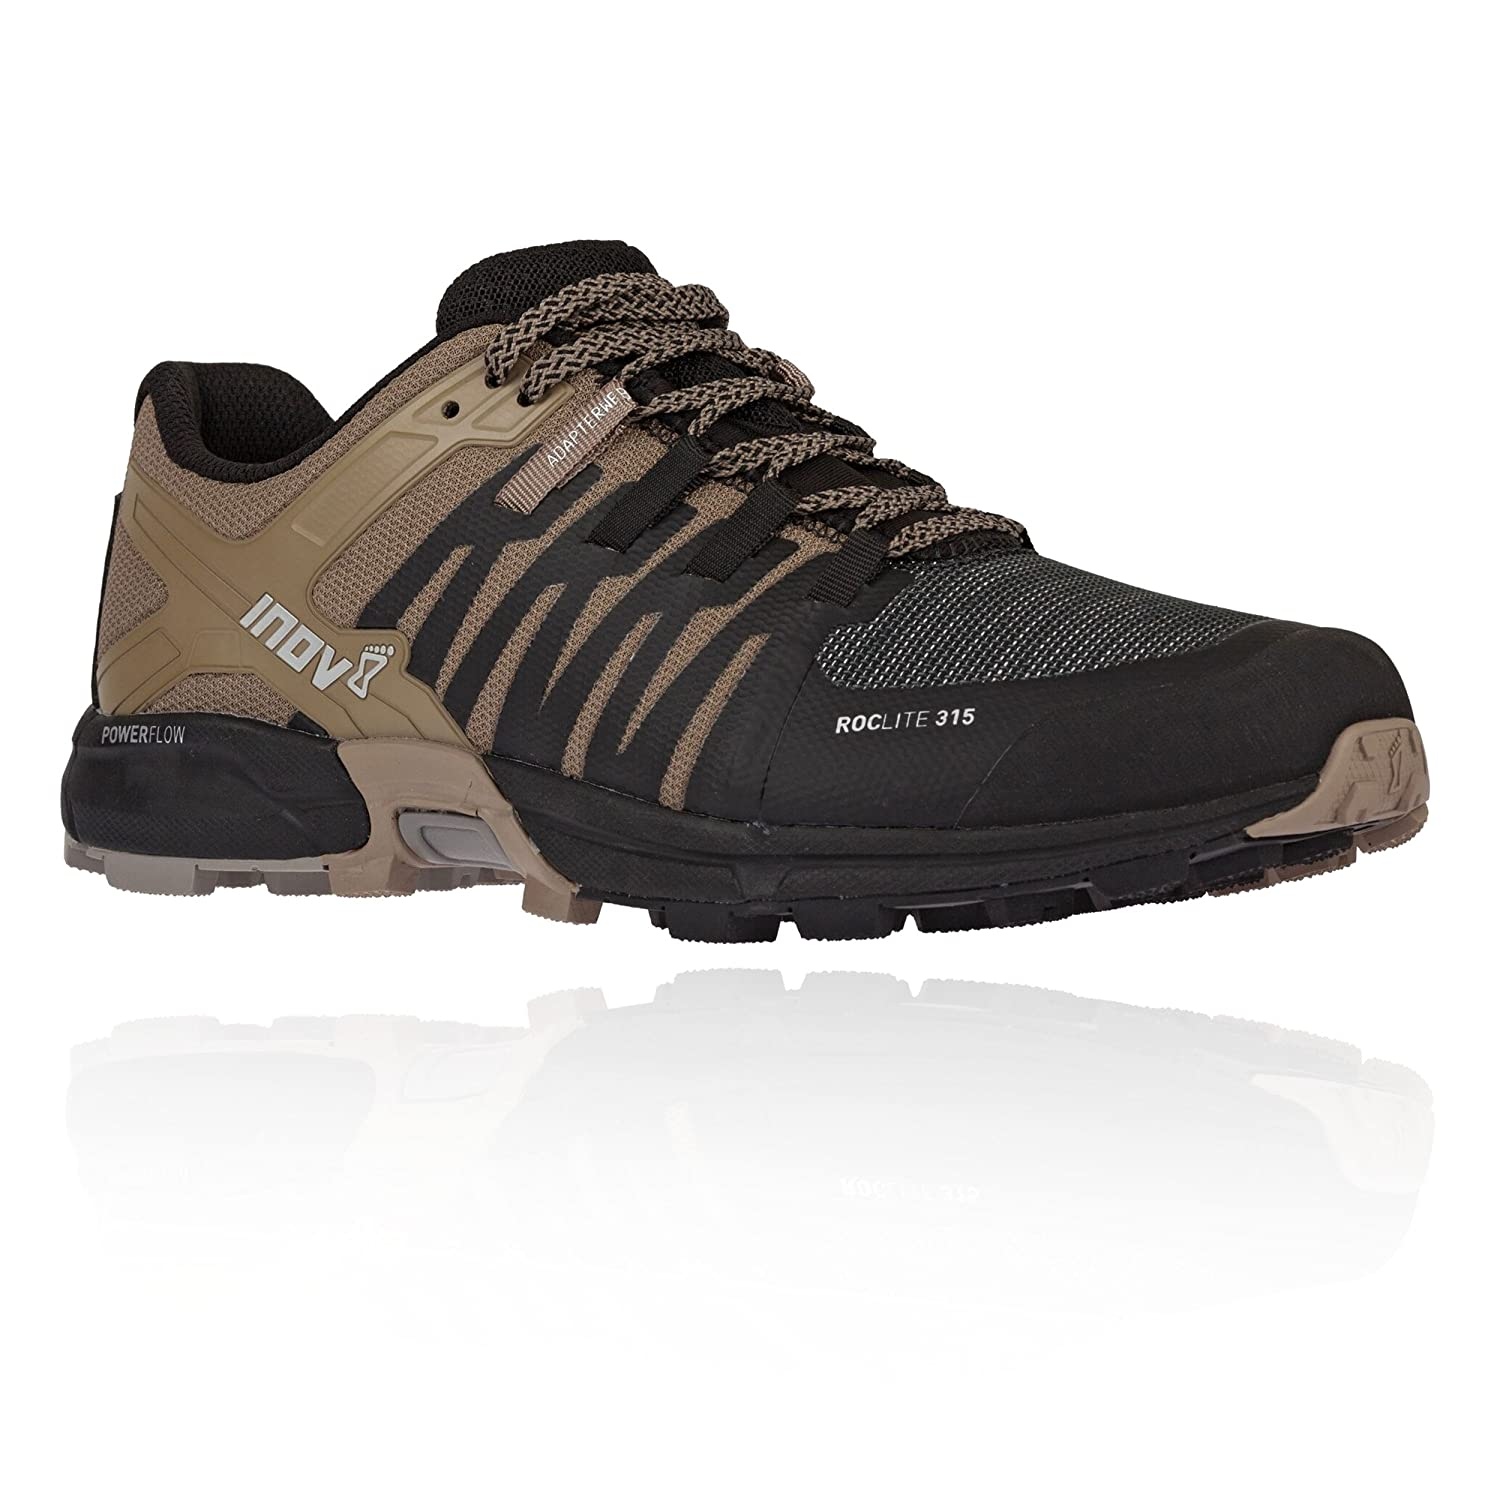 Inov-8 Men's Roclite 315 Running Shoe B079QFMZTR 10.5 M US|Black / Brown